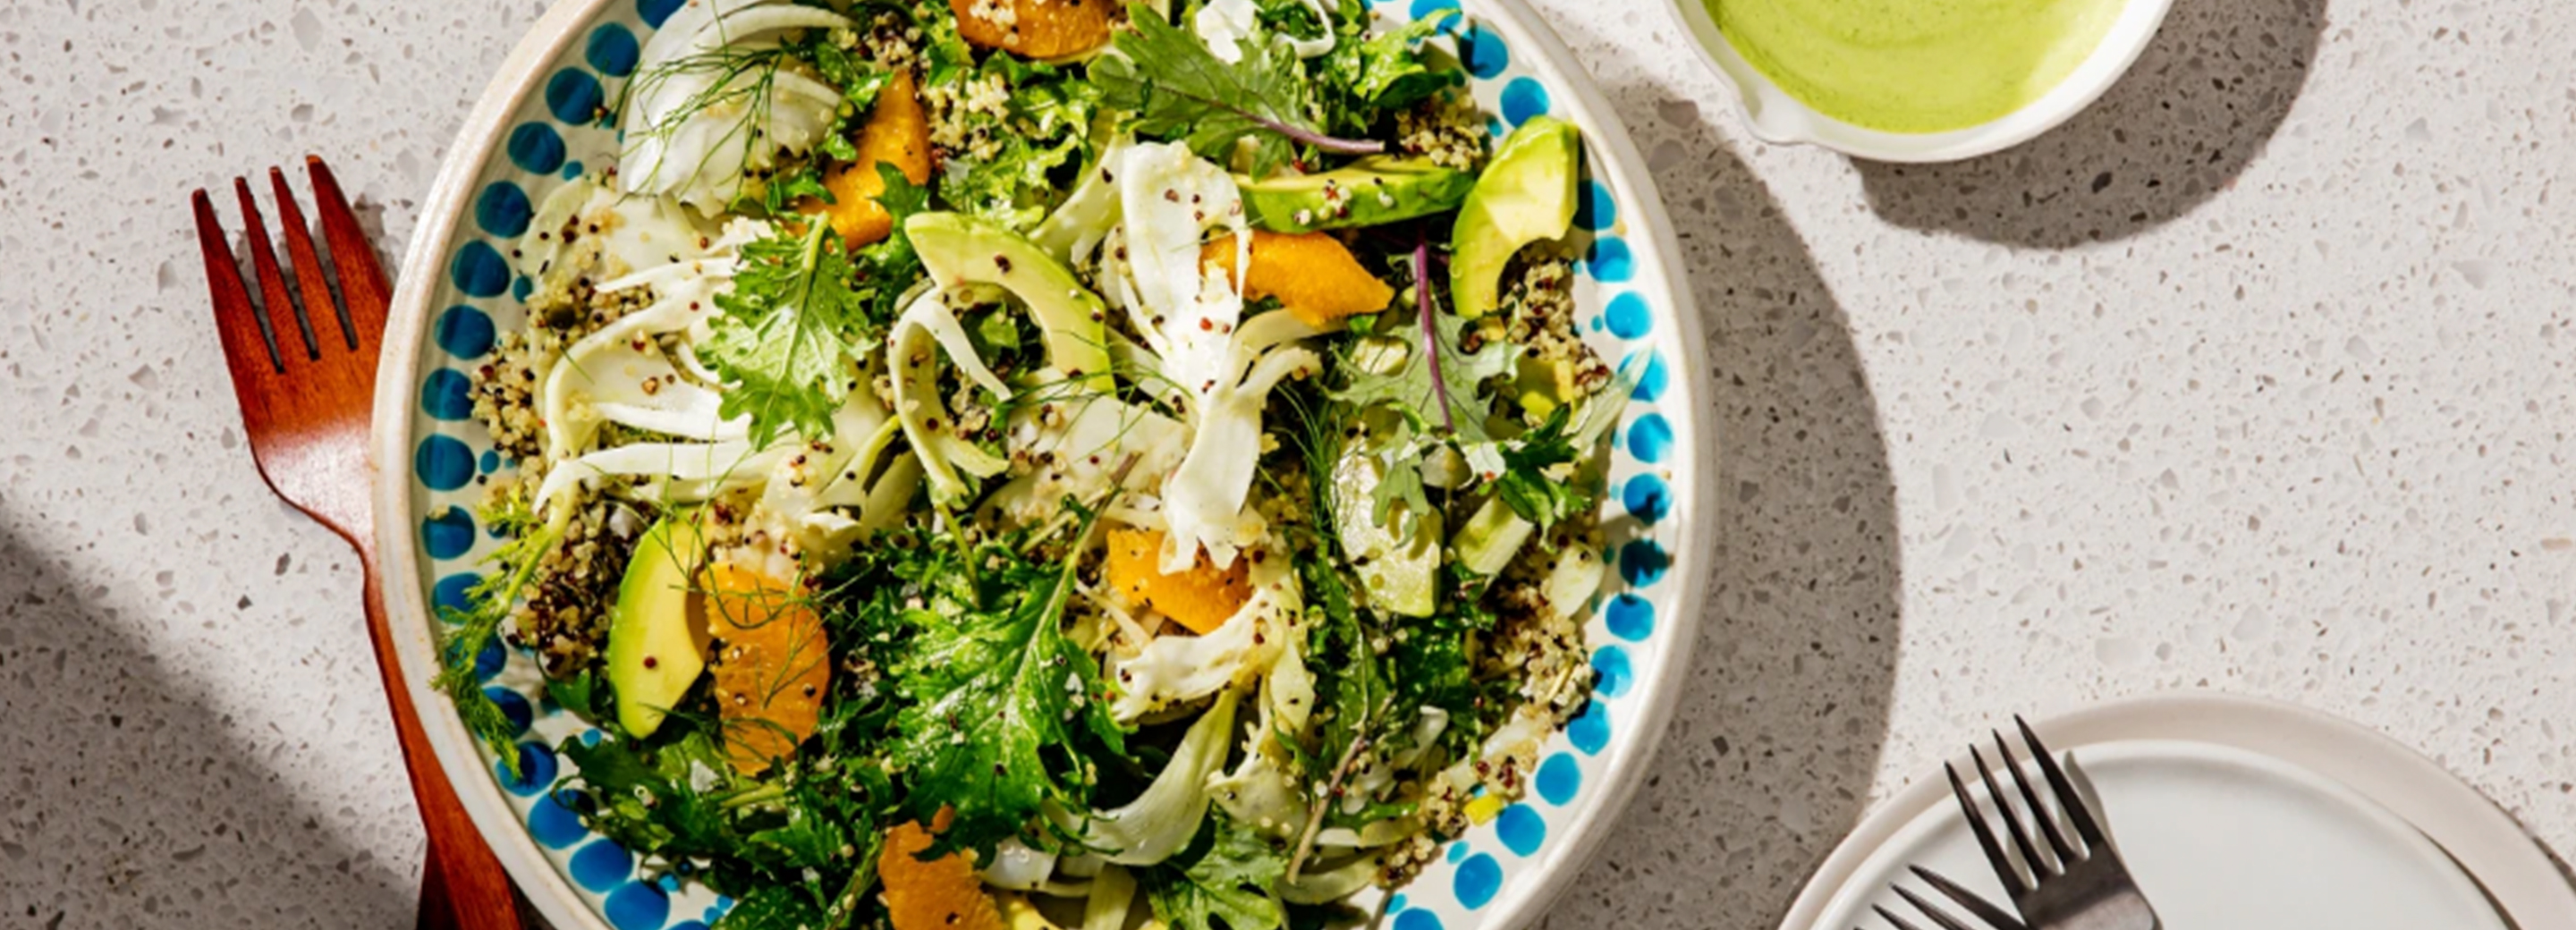 Kale Salad with Creamy Herb Dressing